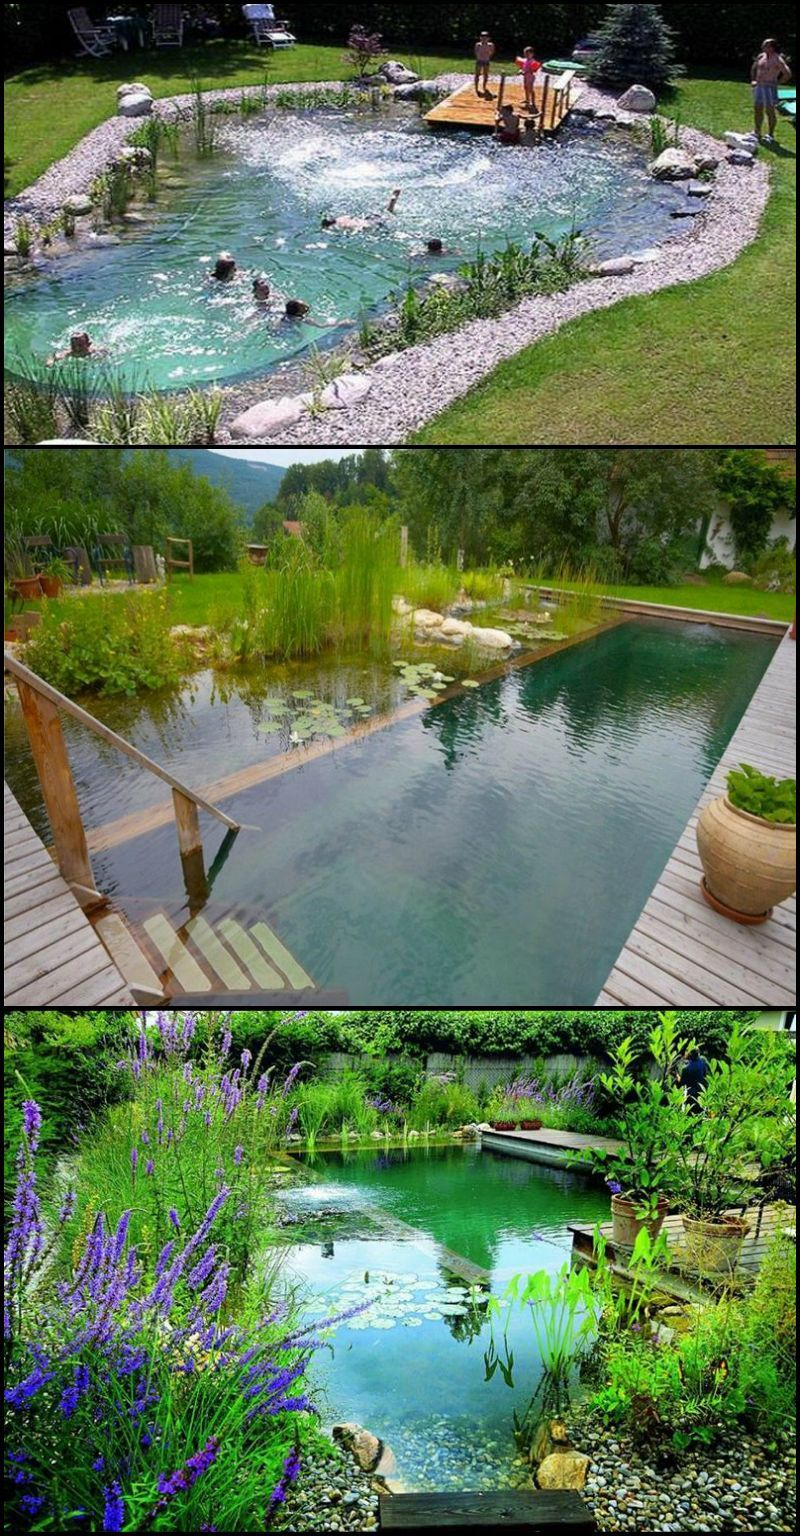 Natural Swimming Ponds, Also Called Natural Pools, Are A ... encequiconcerne Gifi Piscine Gonflable